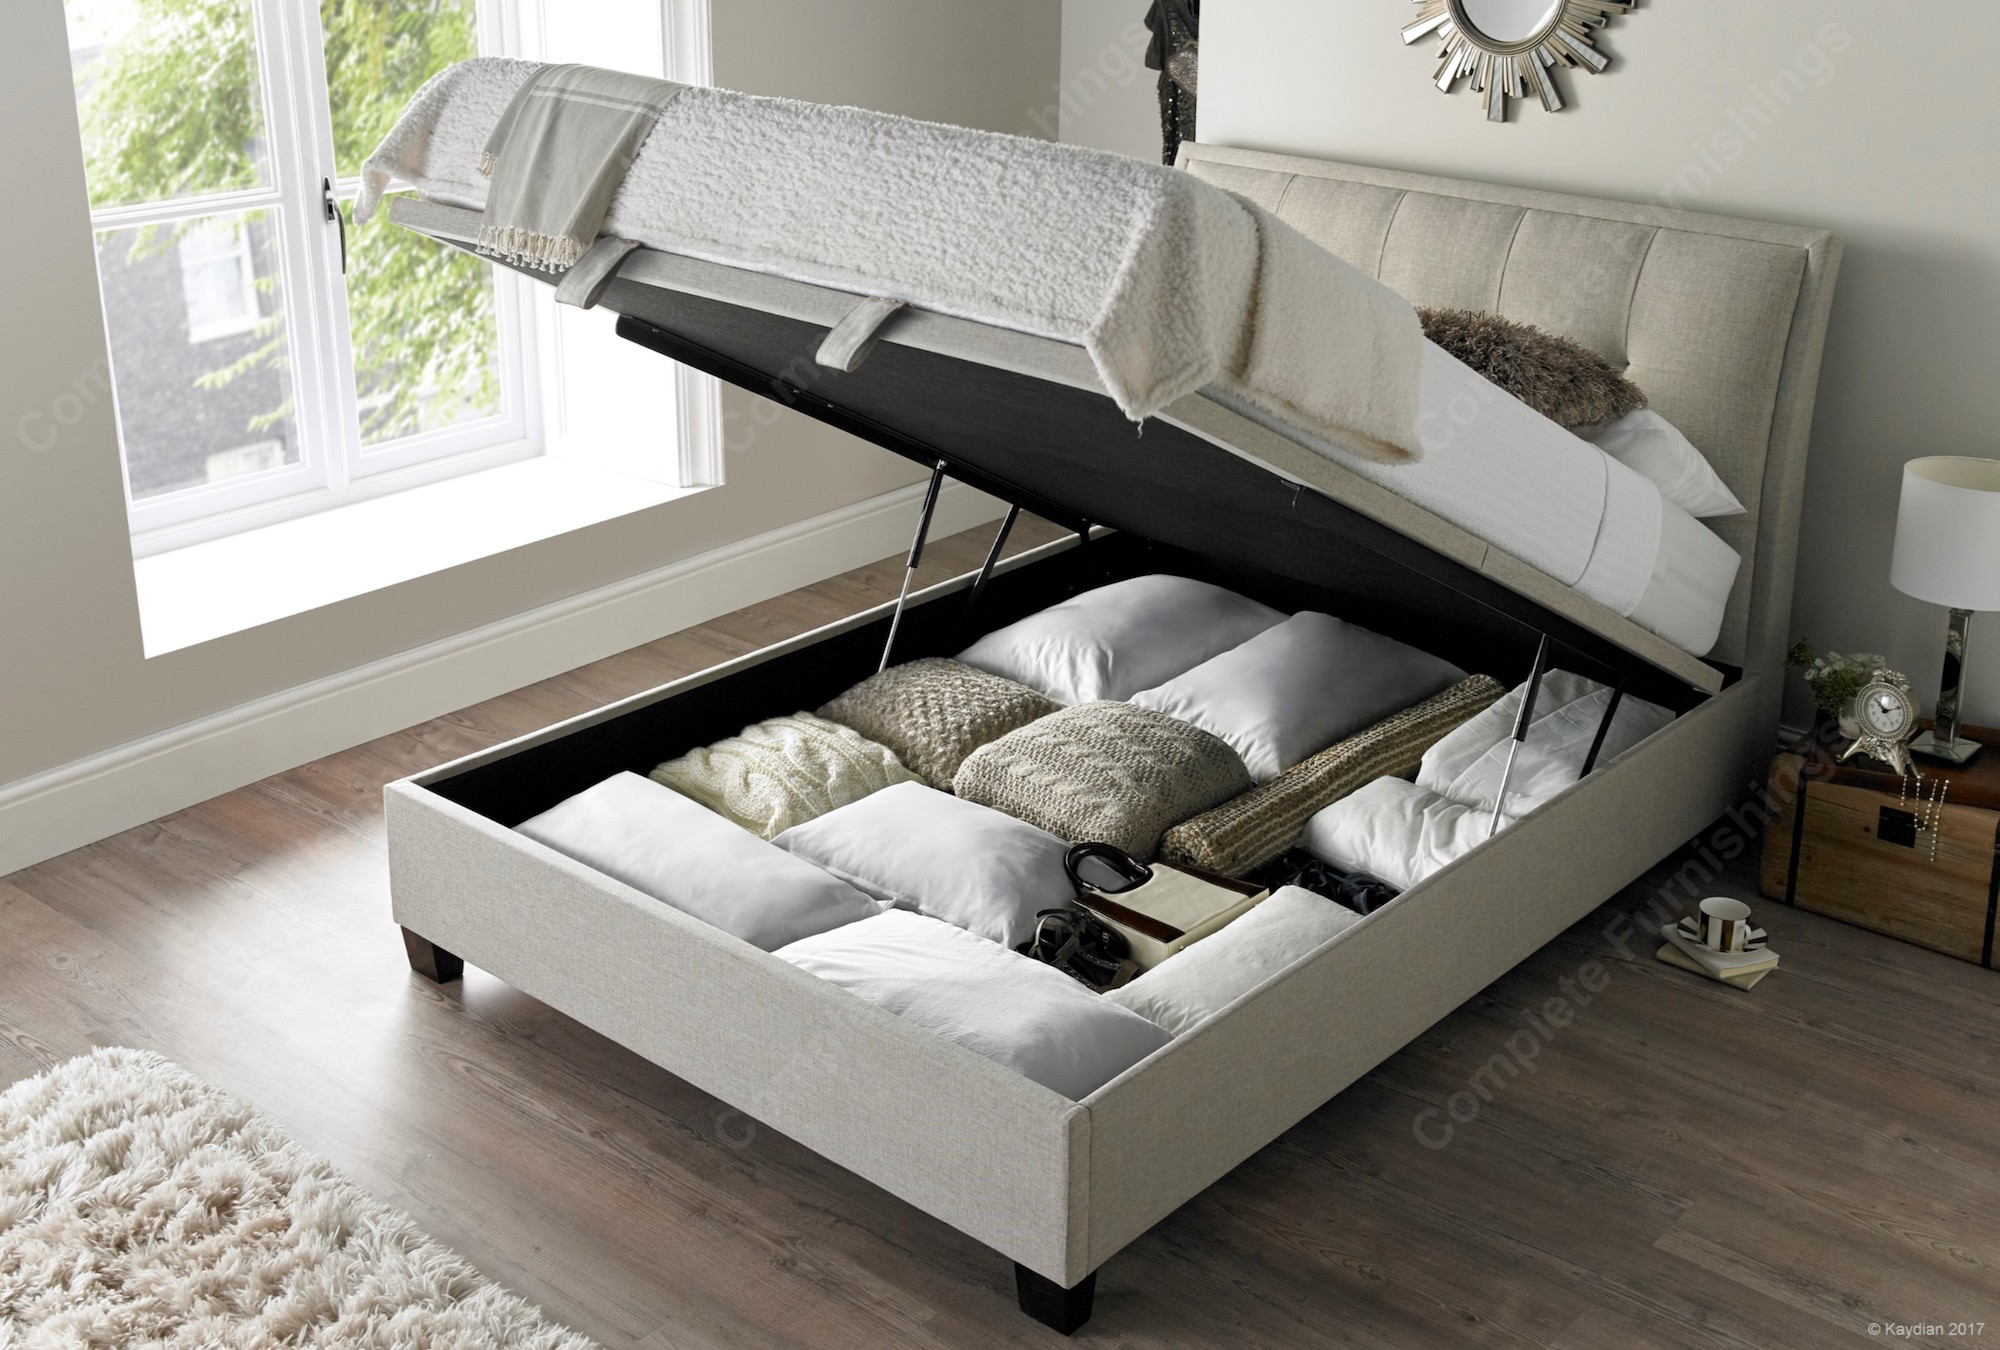 Kaydian Accent Ottoman bed Free delivery Best Price  : Accent Ottoman Bed Oatmeal Open from www.completefurnishings.co.uk size 2000 x 1350 jpeg 503kB